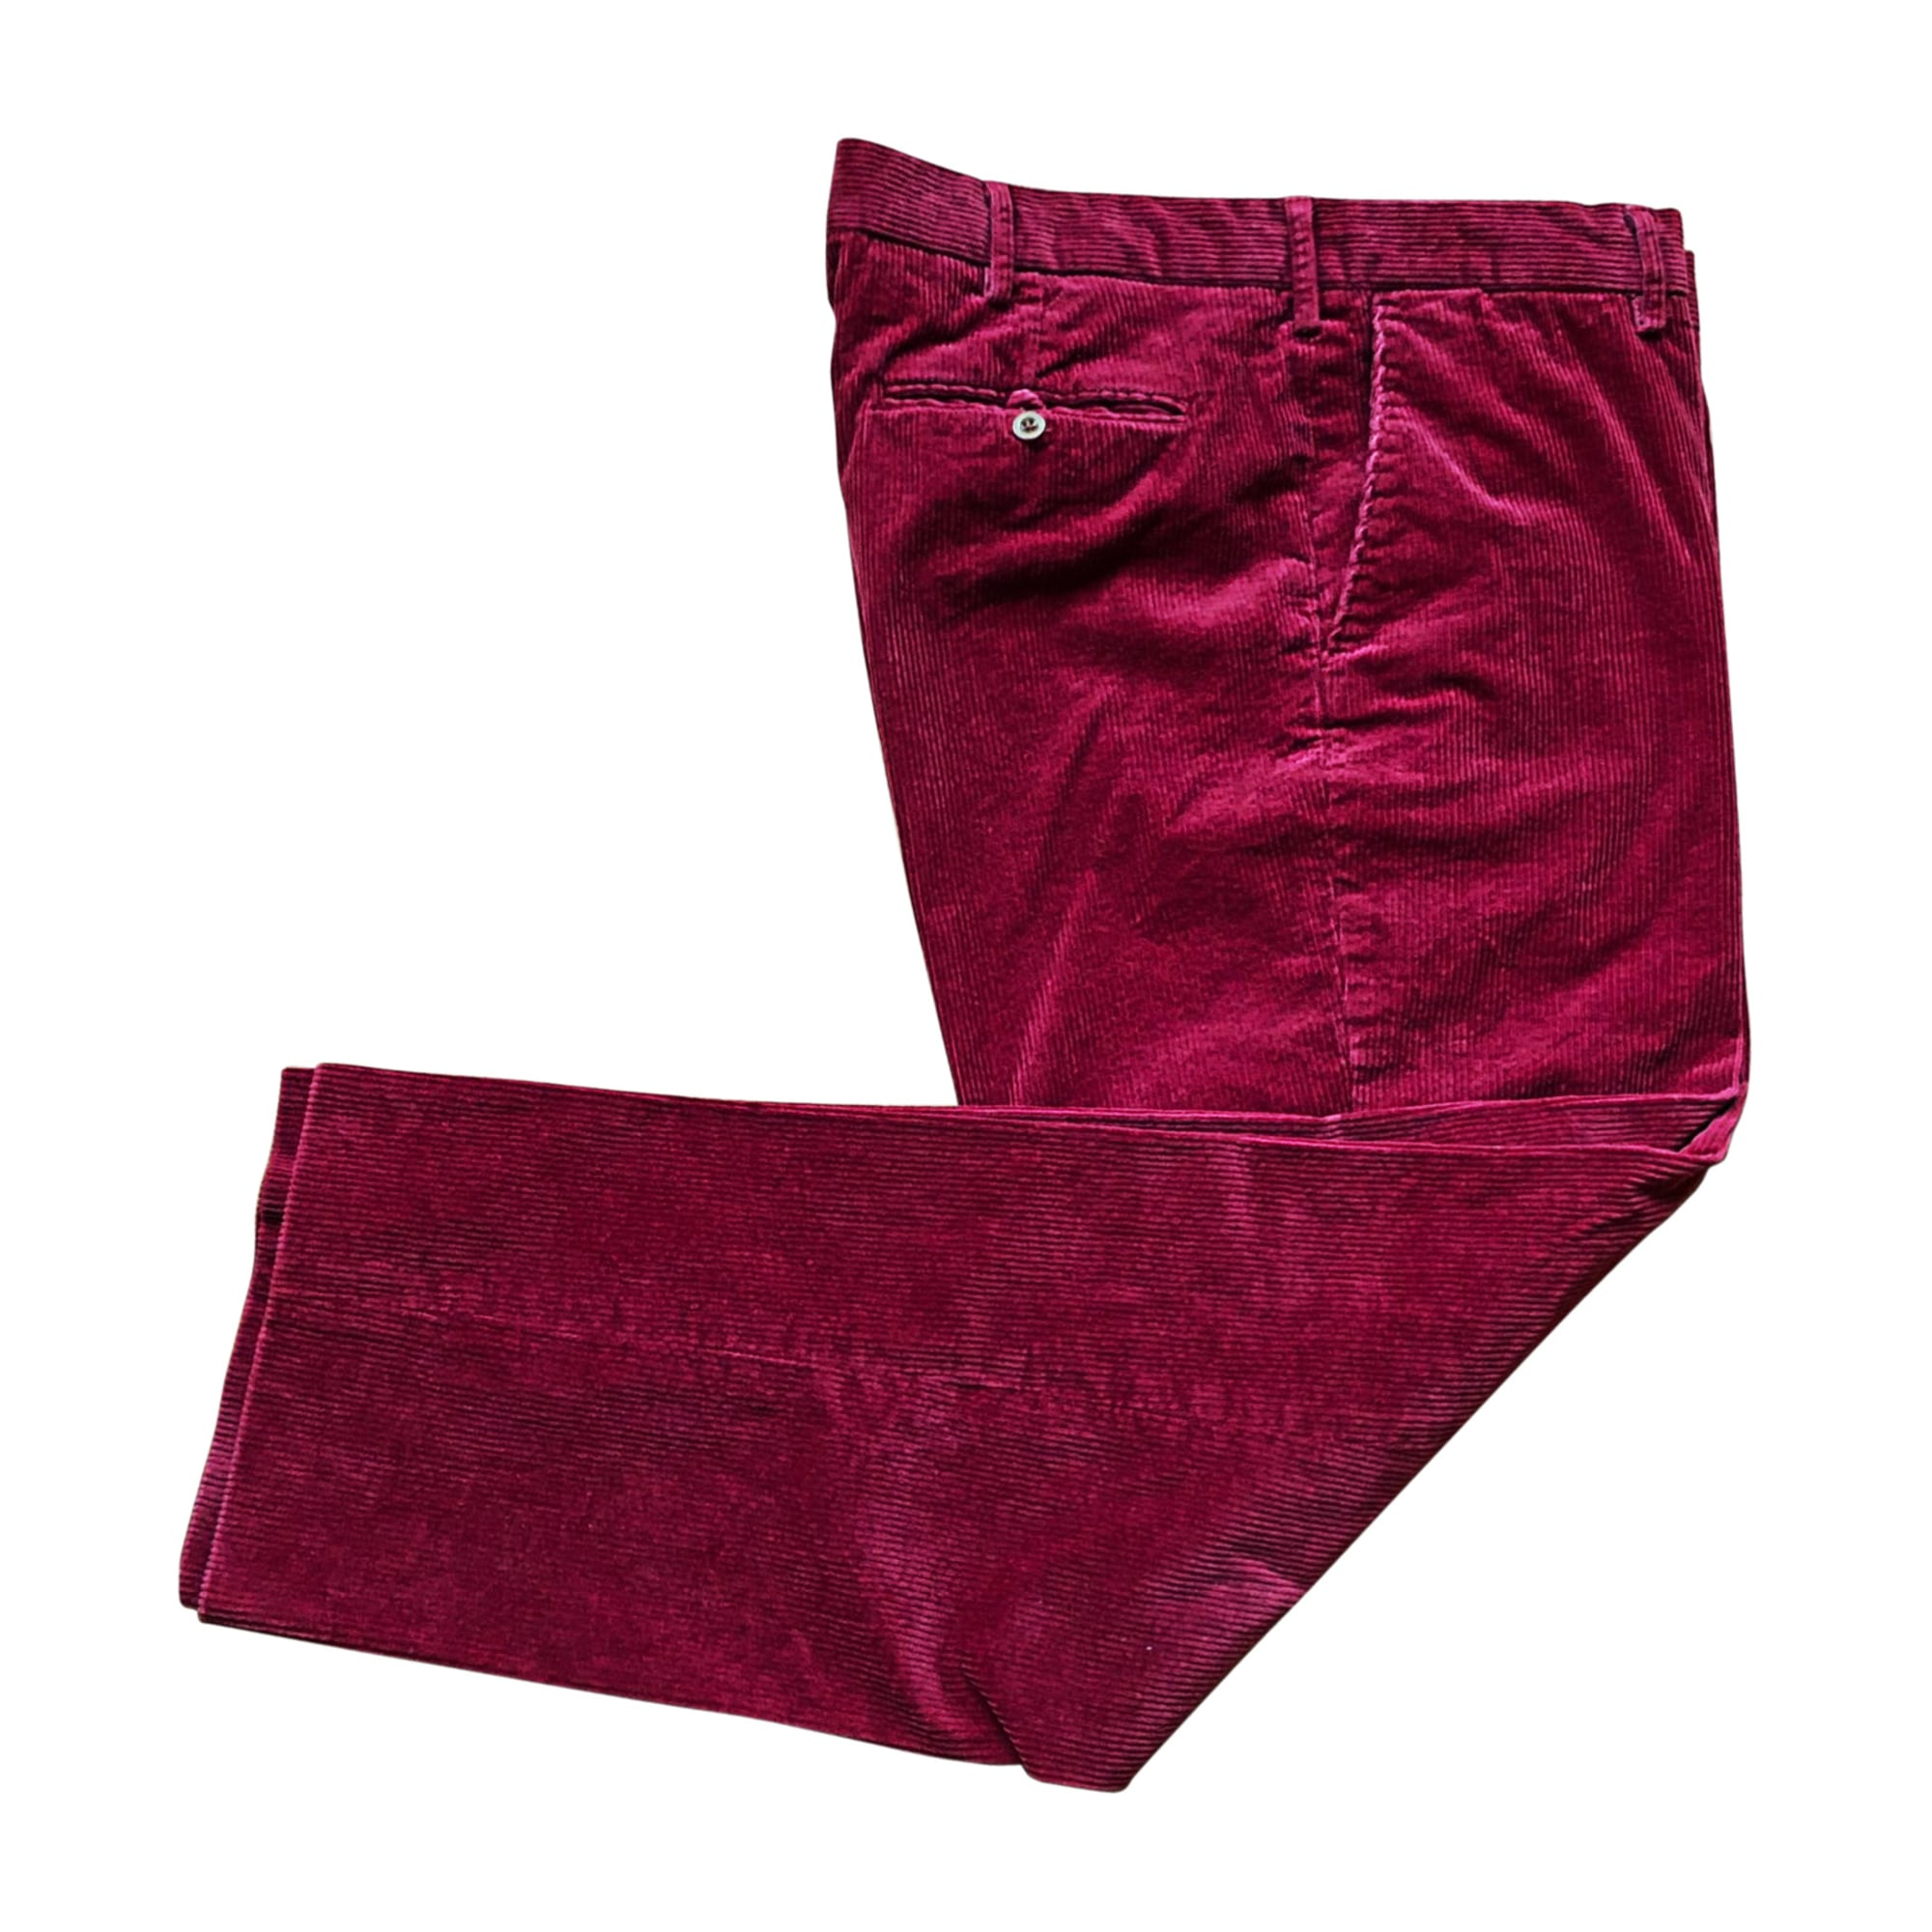 Pantalon droit RALPH LAUREN Rouge, bordeaux